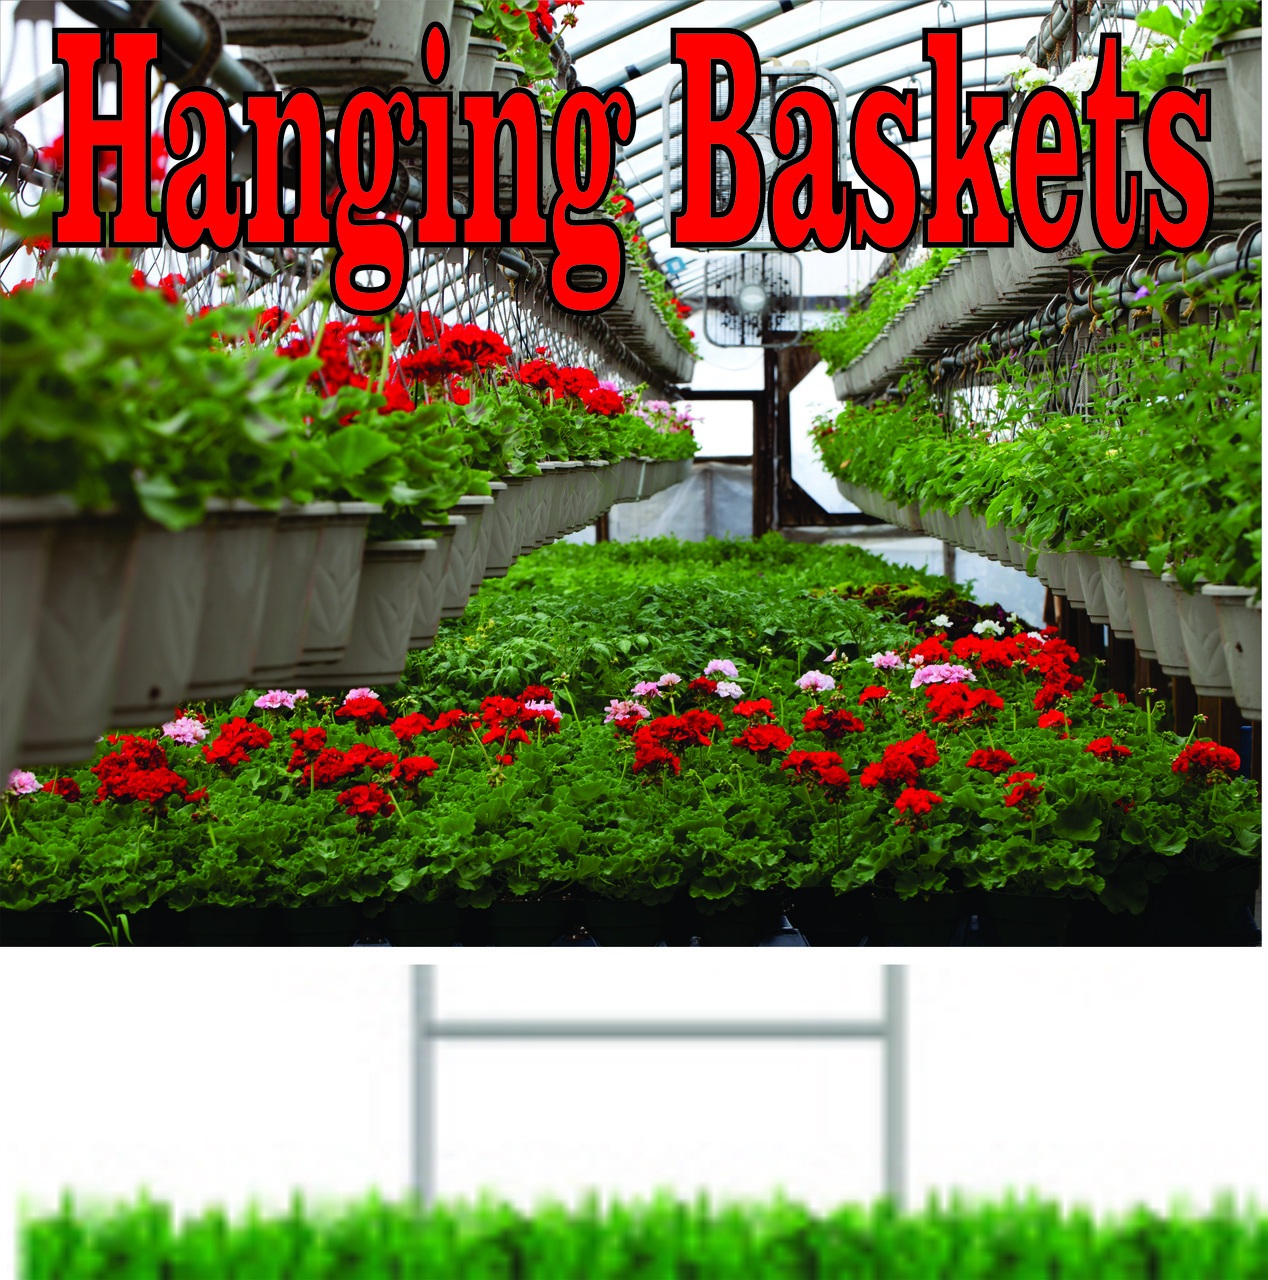 Greenhouse Yard Sign showing hanging baskets gets you new customers.